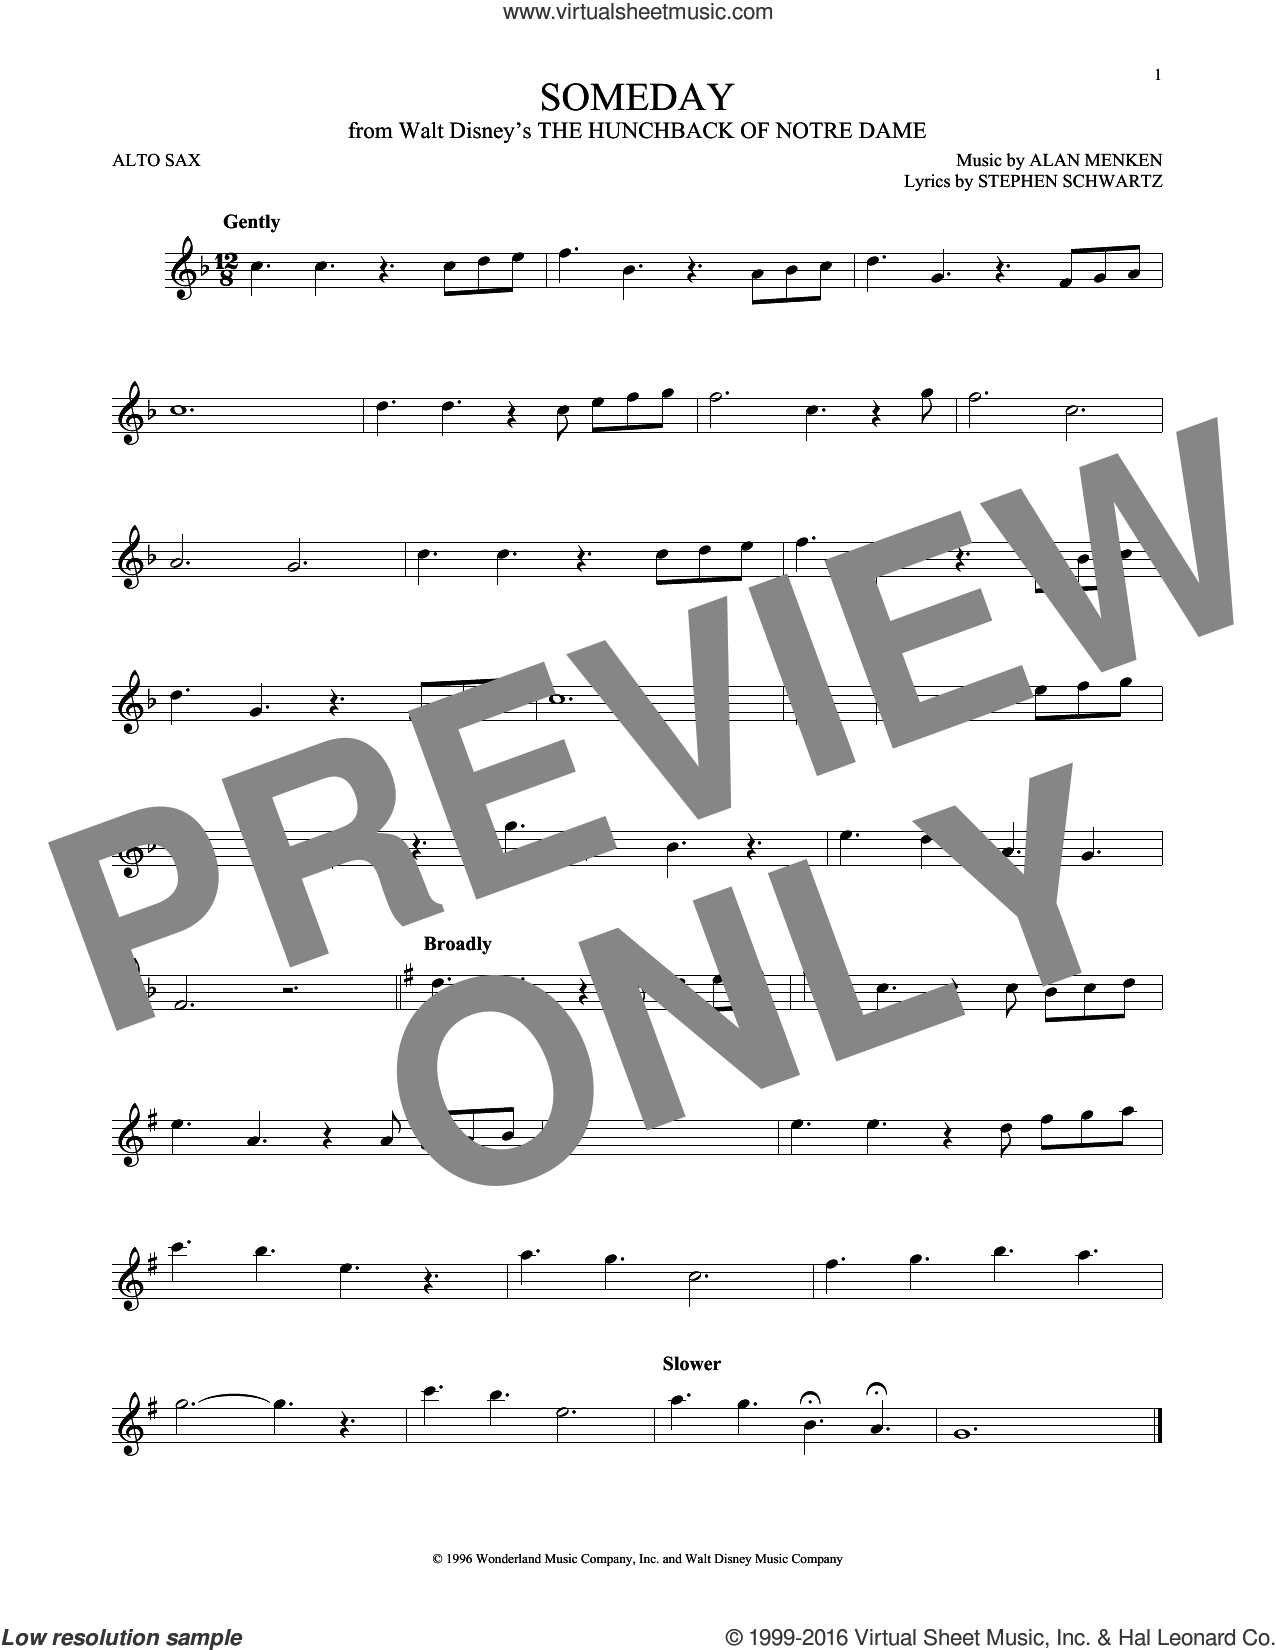 Someday (Esmeralda's Prayer) sheet music for alto saxophone solo by Alan Menken, Donna Summer and Stephen Schwartz, intermediate skill level